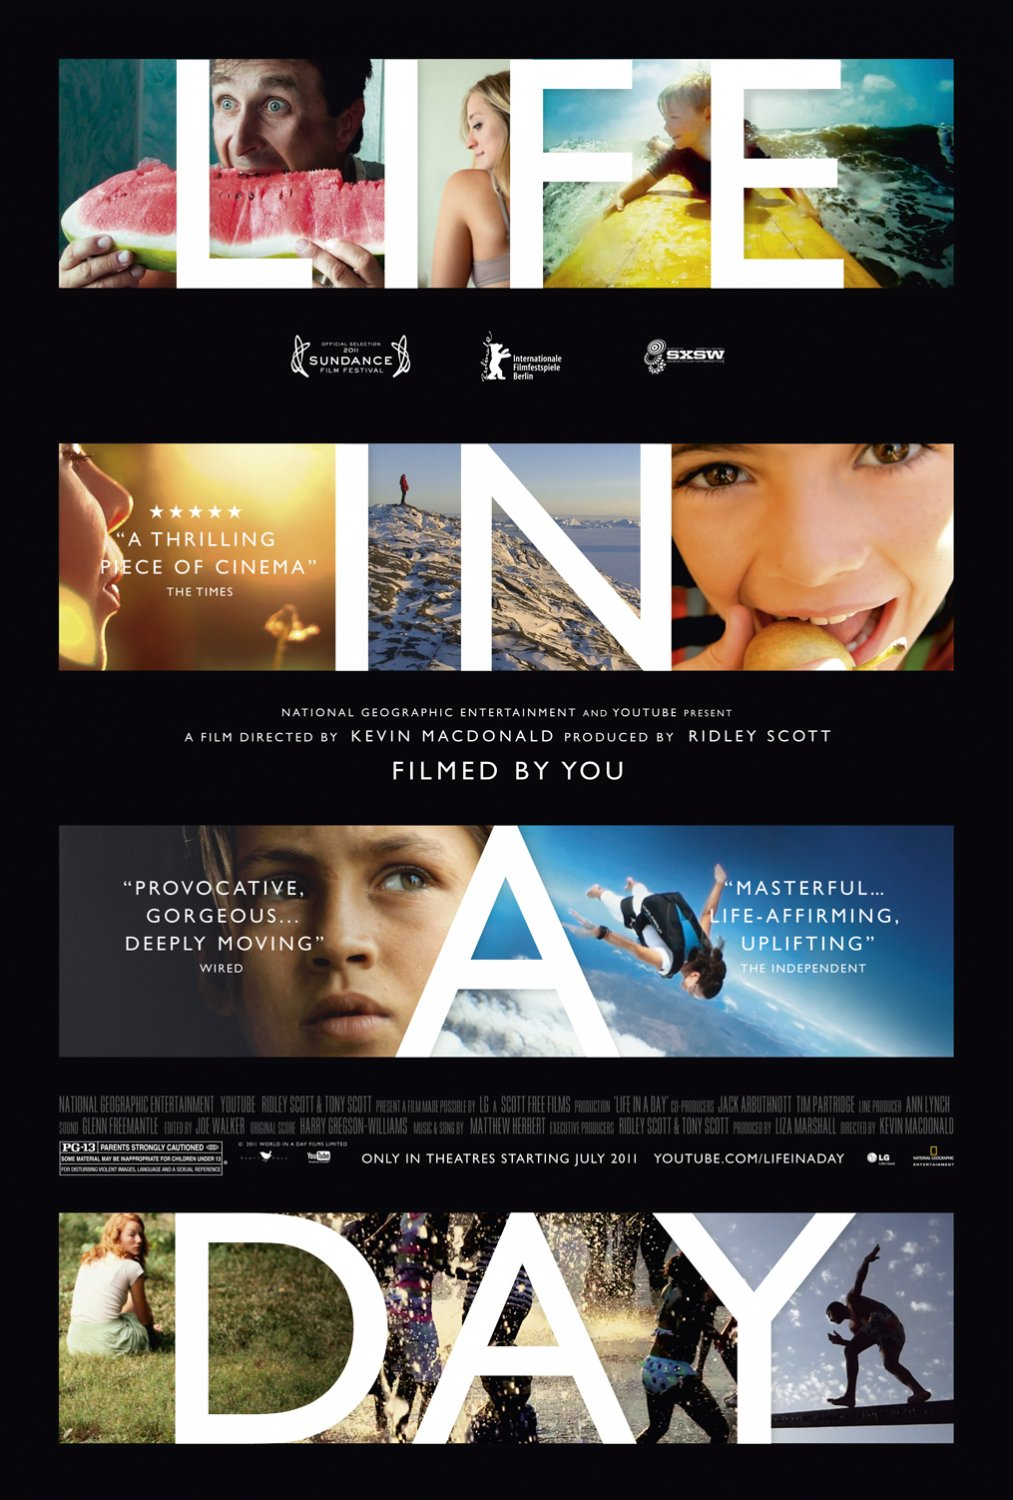 moviesandsongs365: Documentary review: Life in a Day (2011)